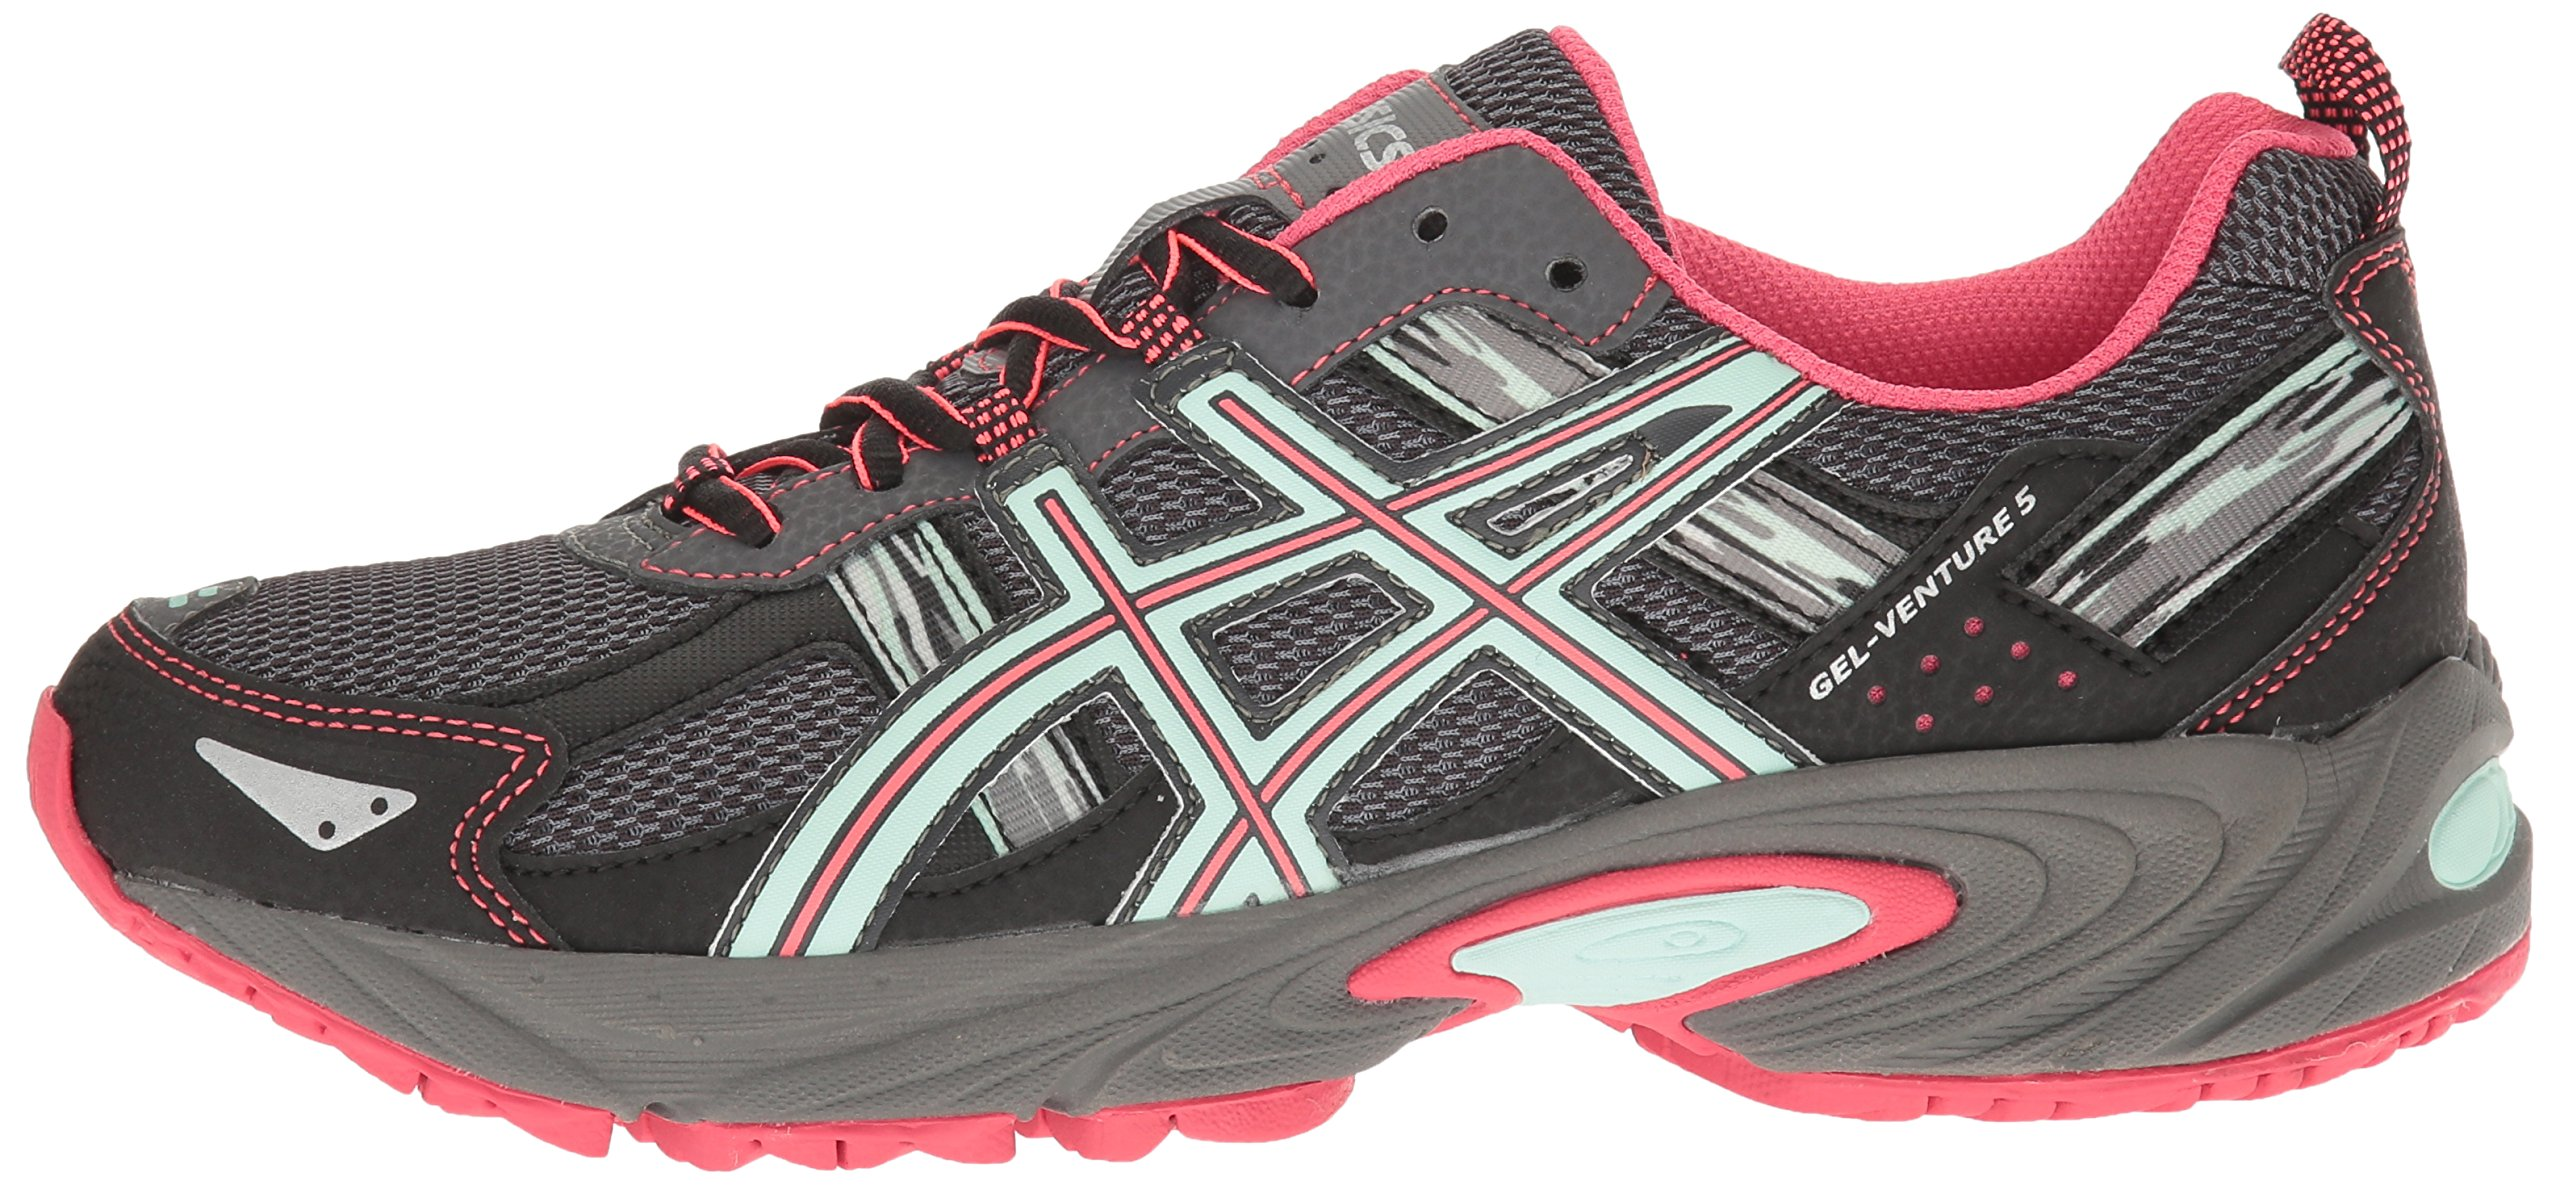 ASICS Women's Gel-Venture 5 Trail Runner, Carbon/Diva Pink/Bay, 9 M US by ASICS (Image #5)